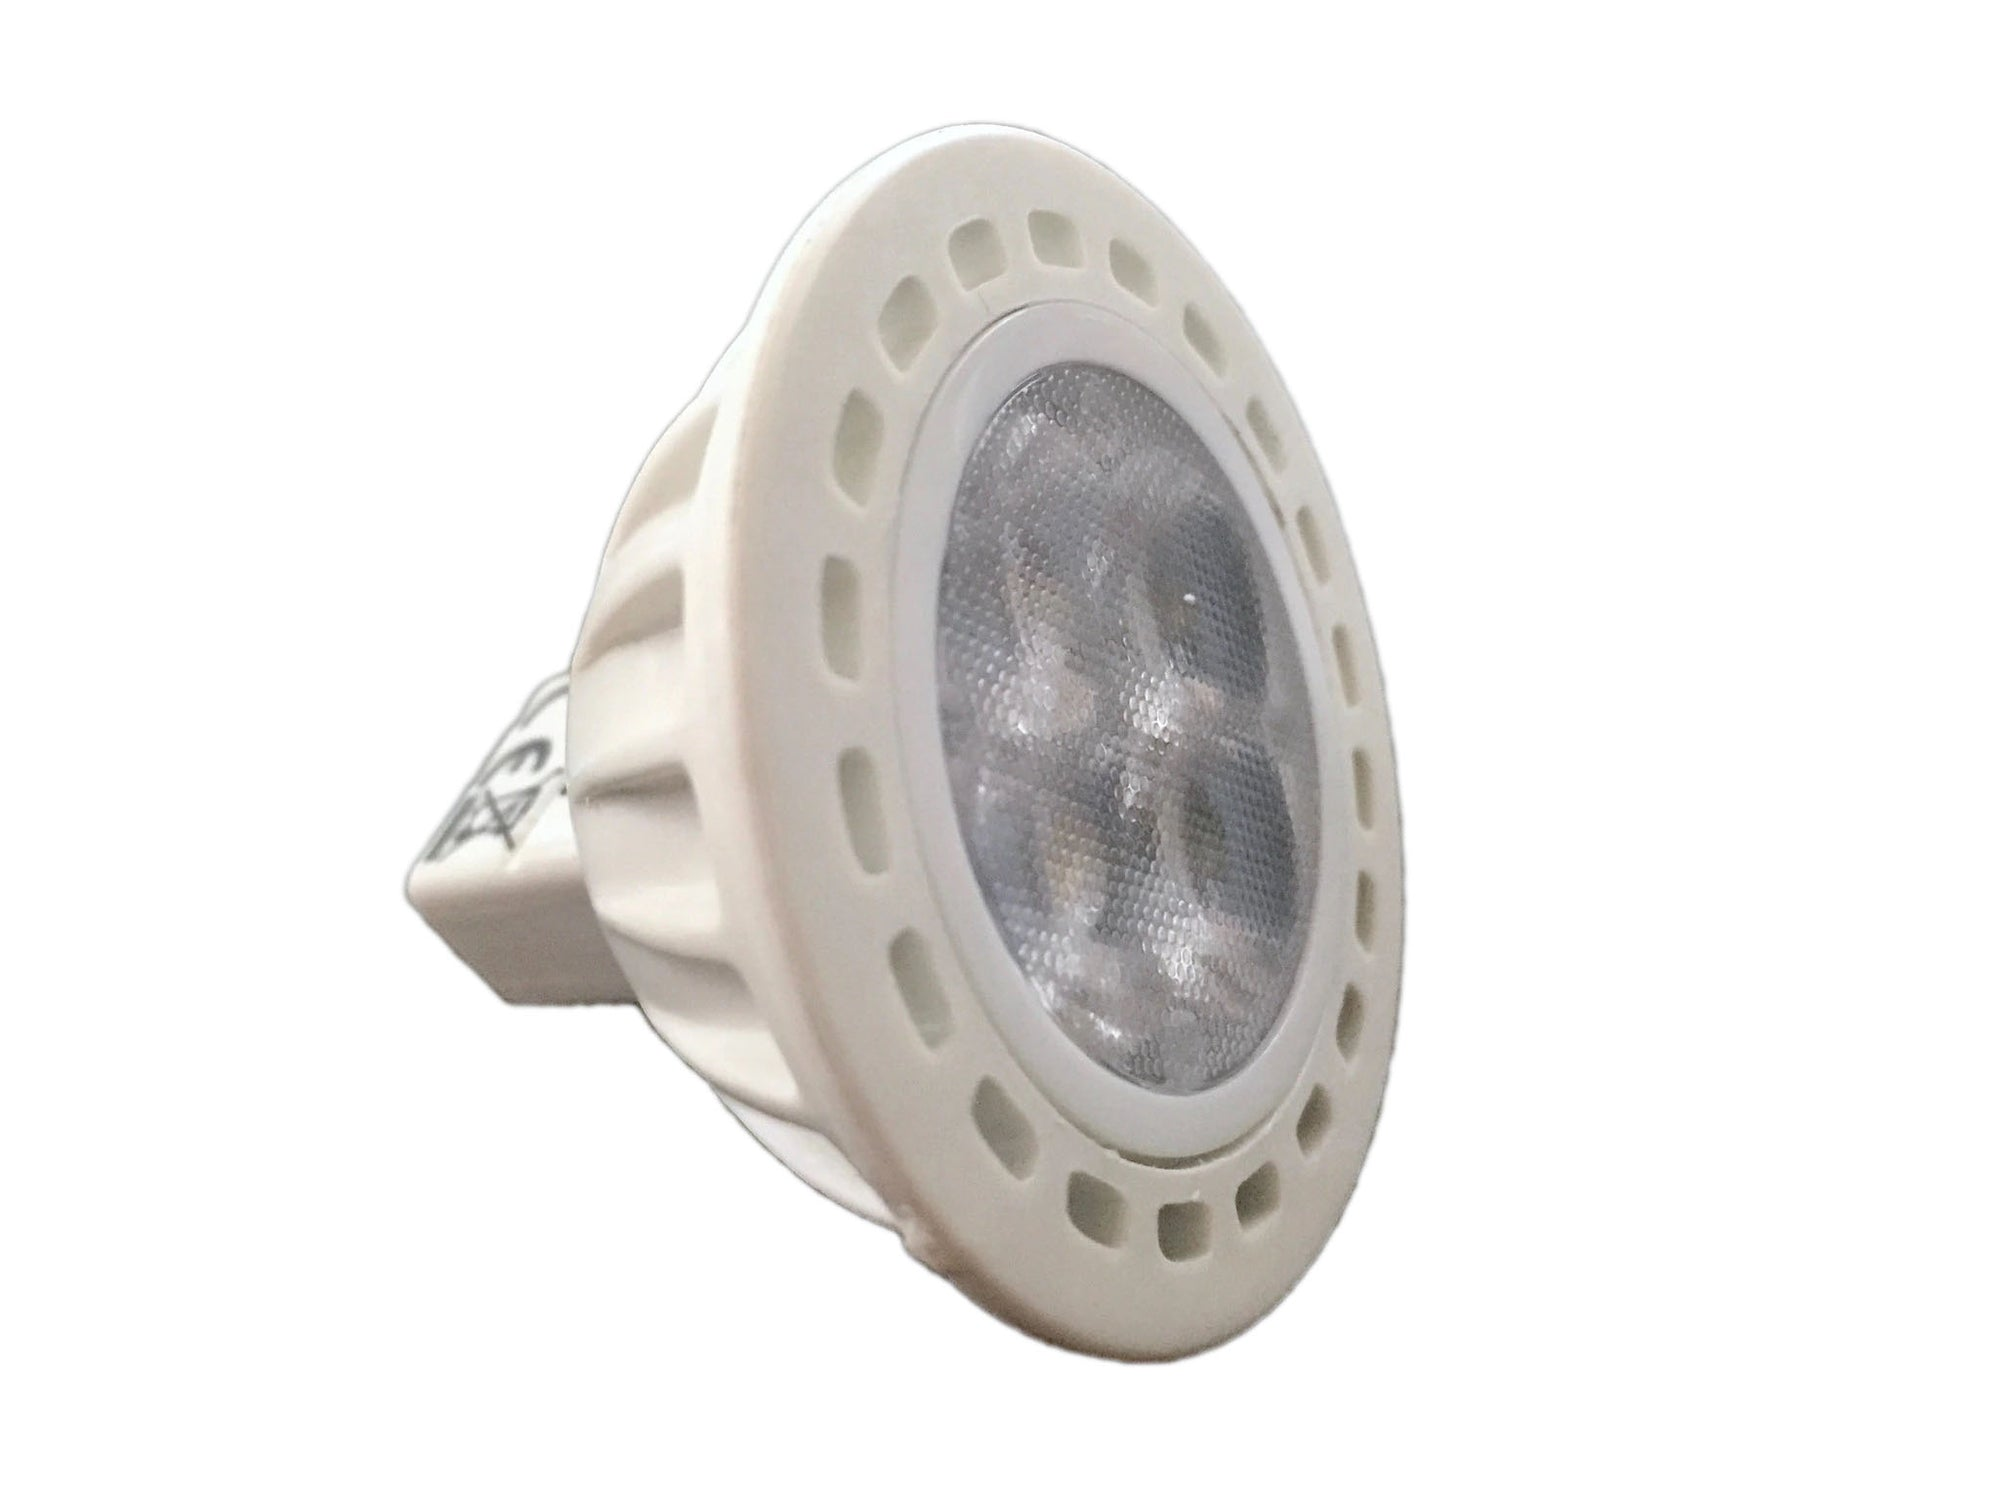 LED Replacement Fountain Light Kit Bulb